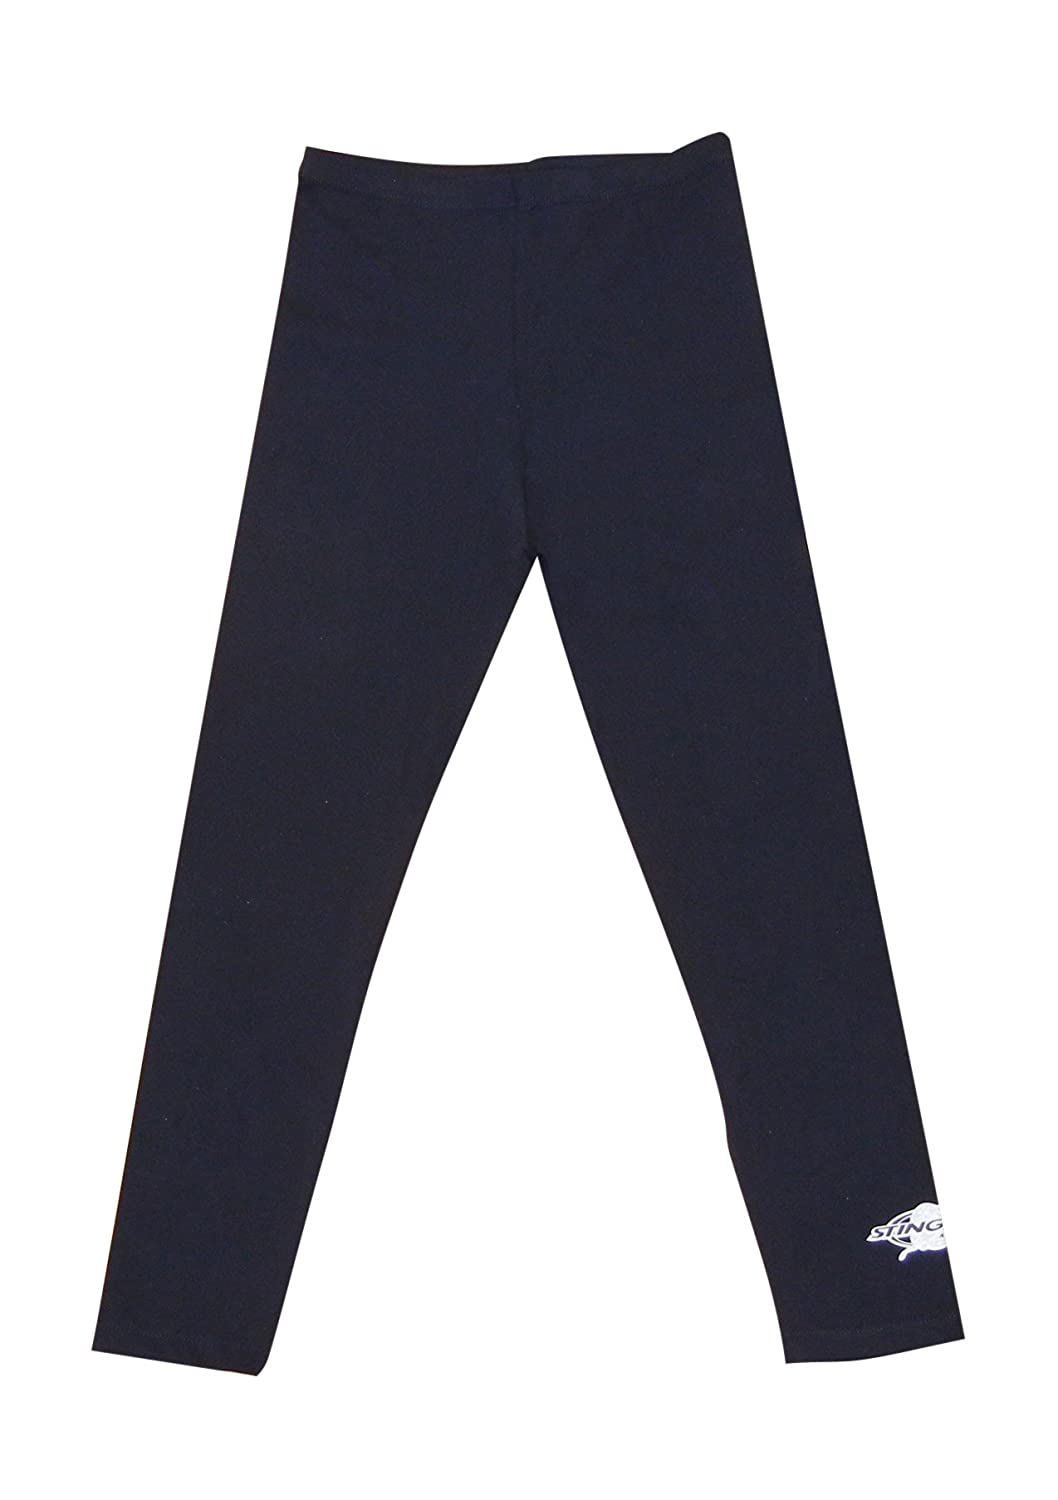 Stingray Black UV Sun Protective Swim Tights for Boys & Girls- Swim Pants - Sun Protection Swimming Leggings - sizes 4-14. (4) Stingray Australia